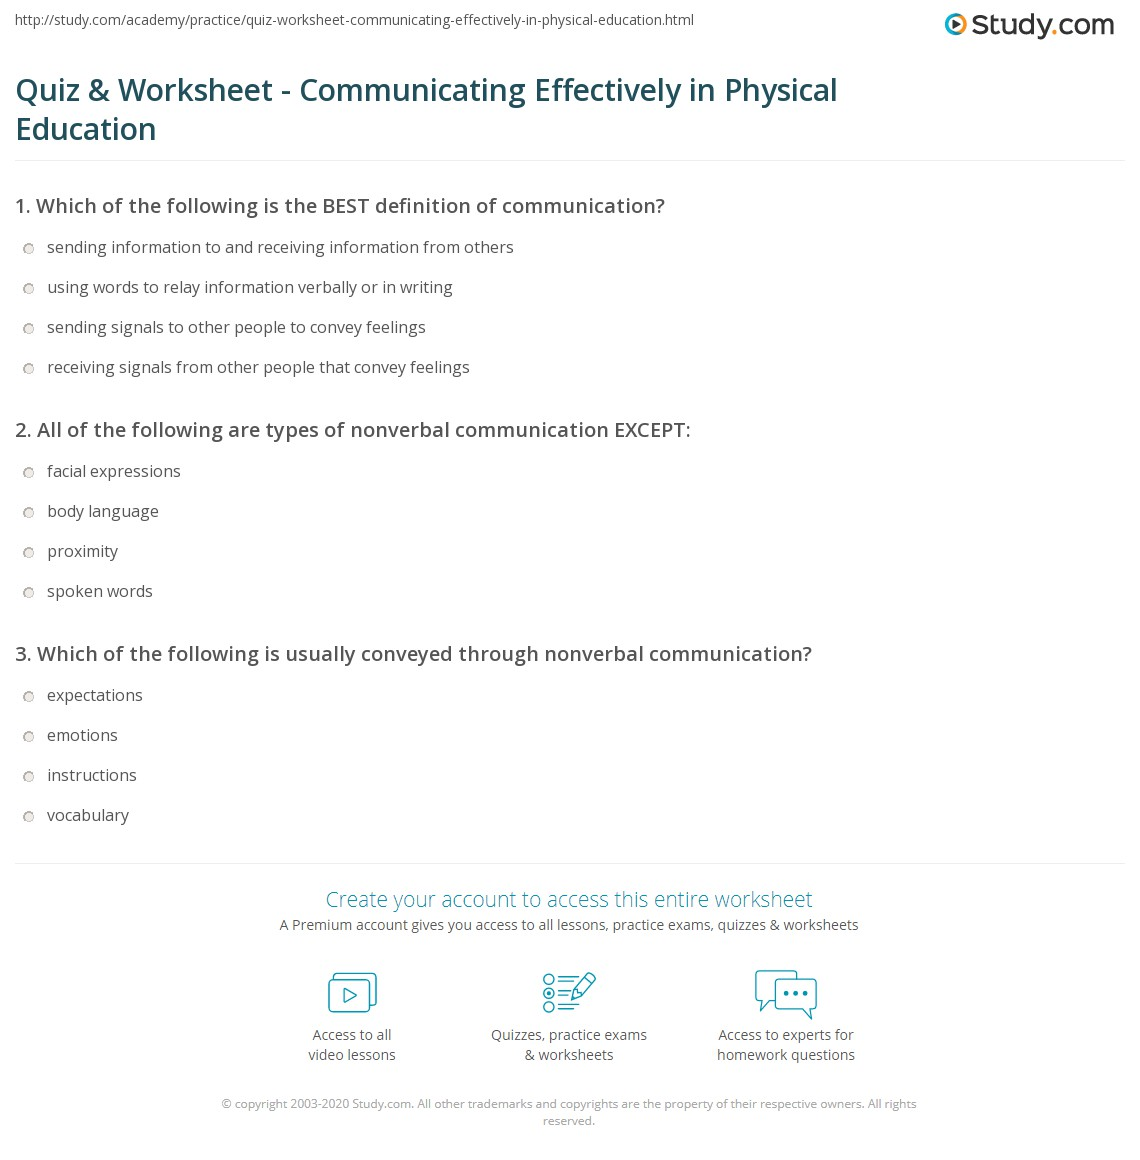 quiz & worksheet - communicating effectively in physical education